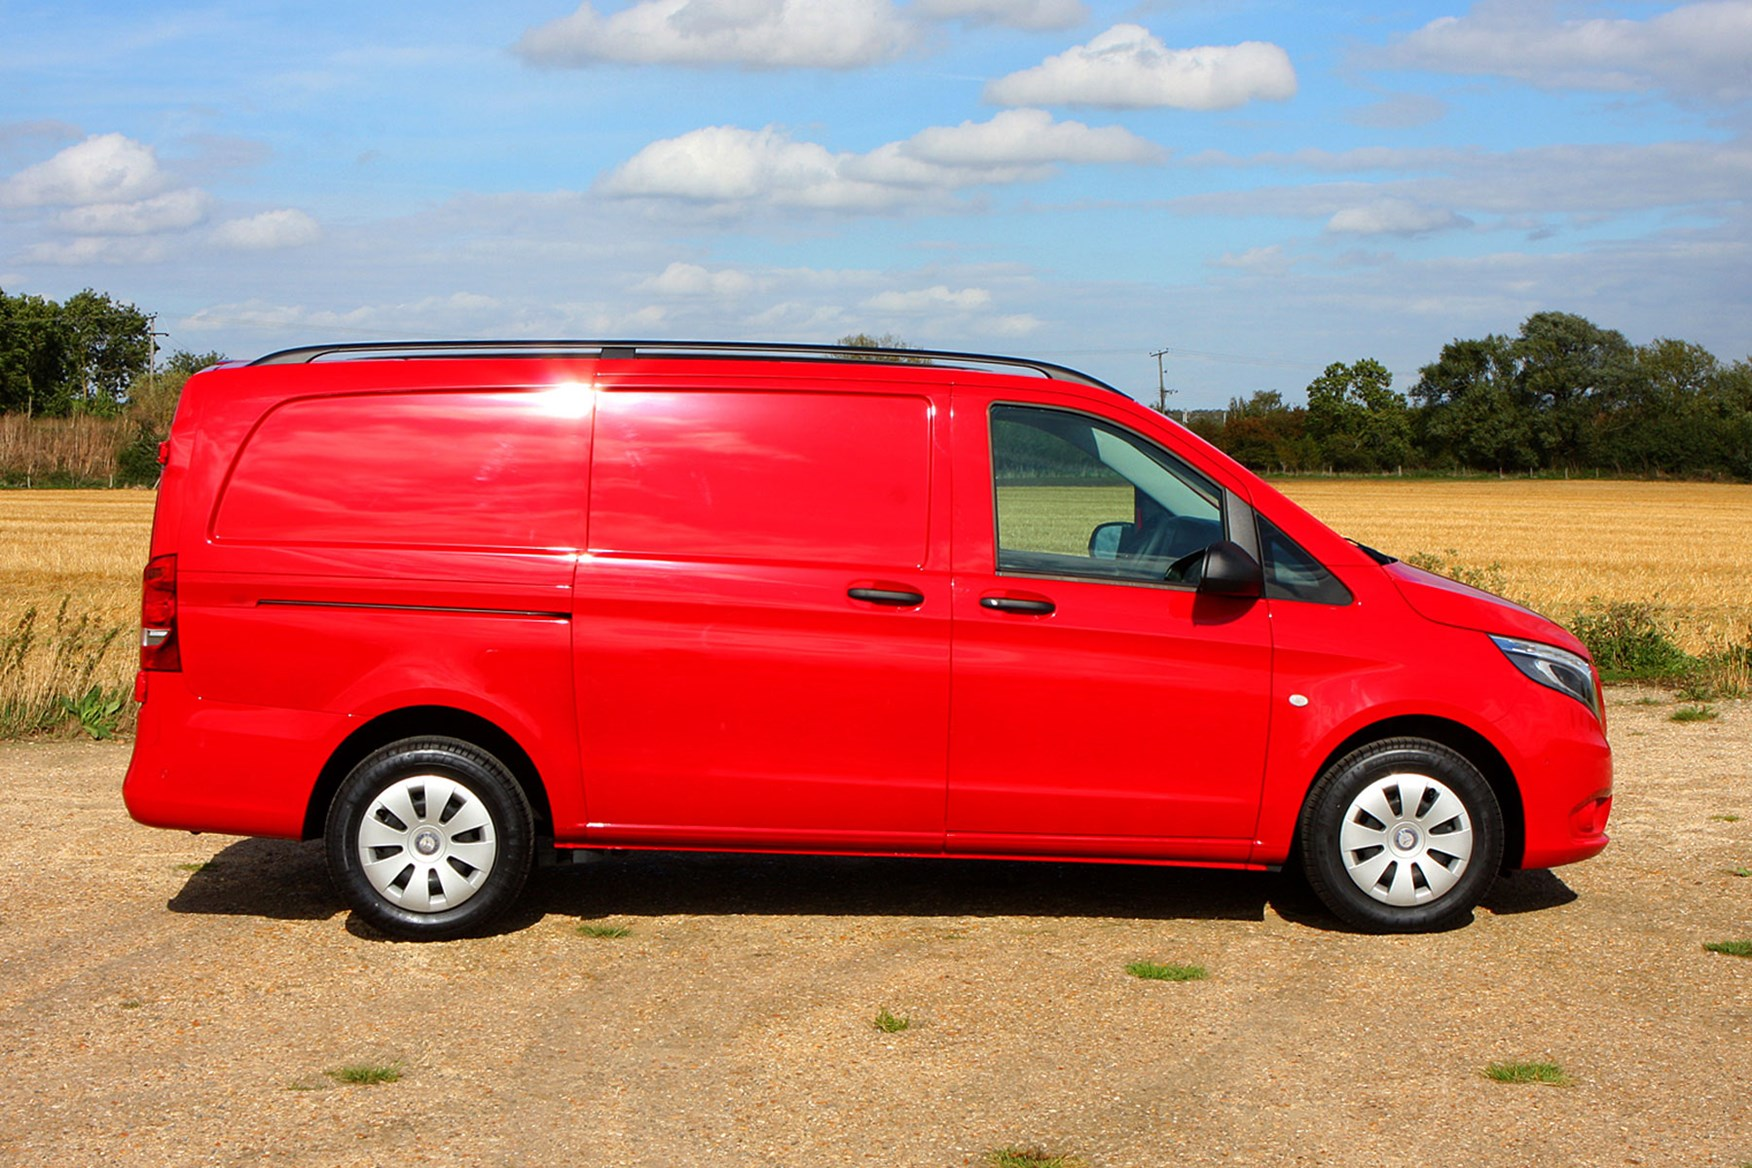 Mercedes-Benz Vito 111CDi Long review - side view, red